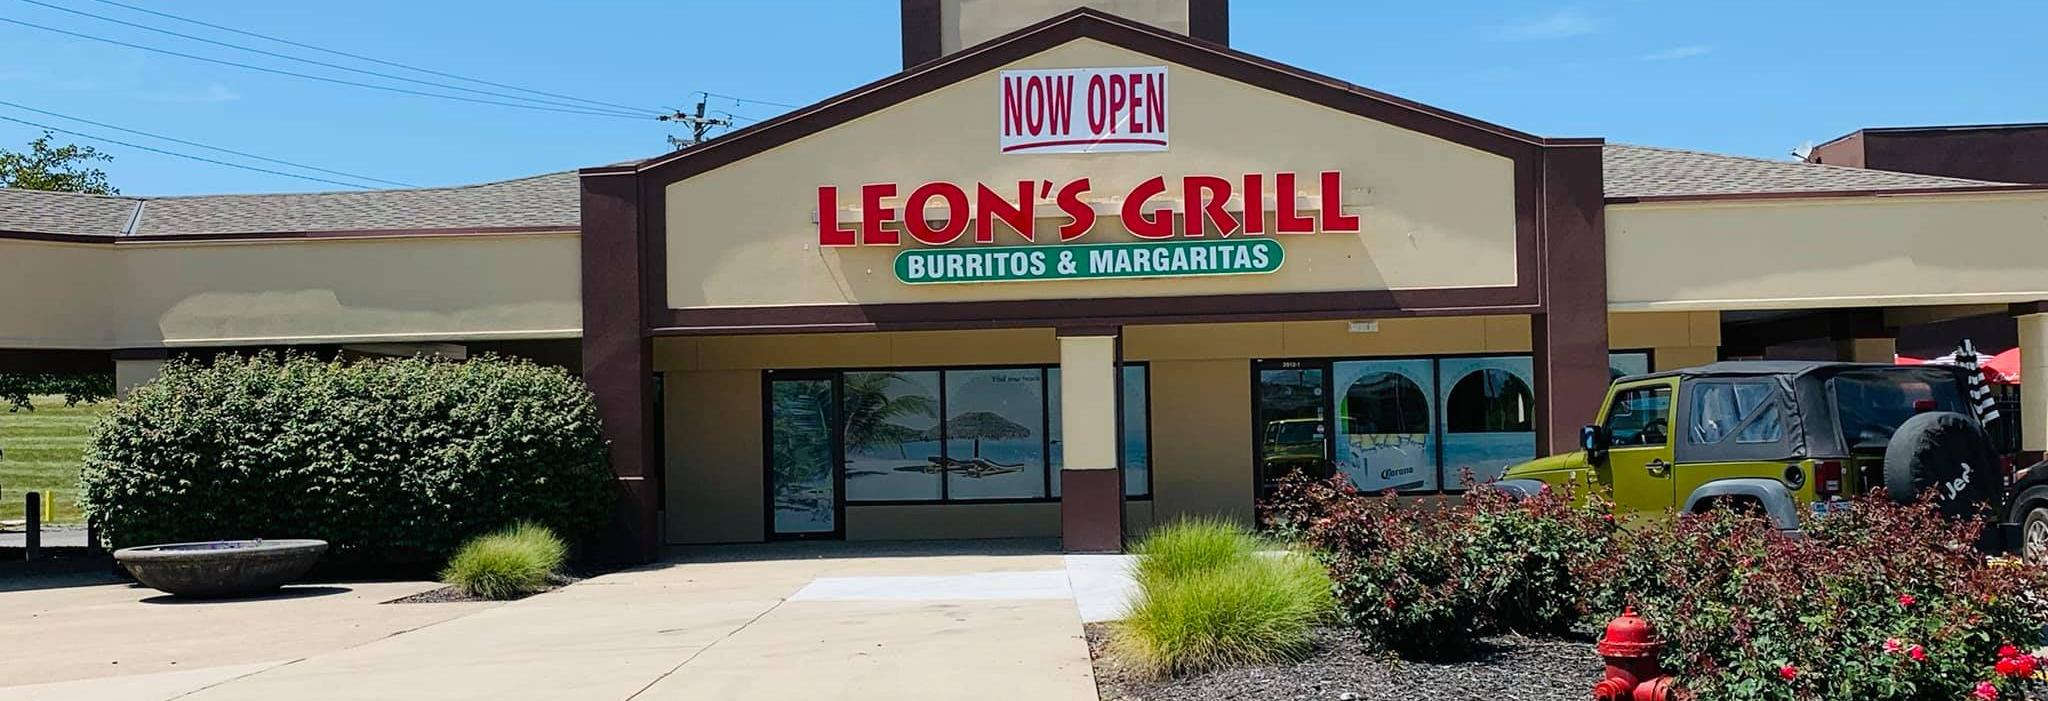 leon's grill burritos and margaritas exterior maineville ohio